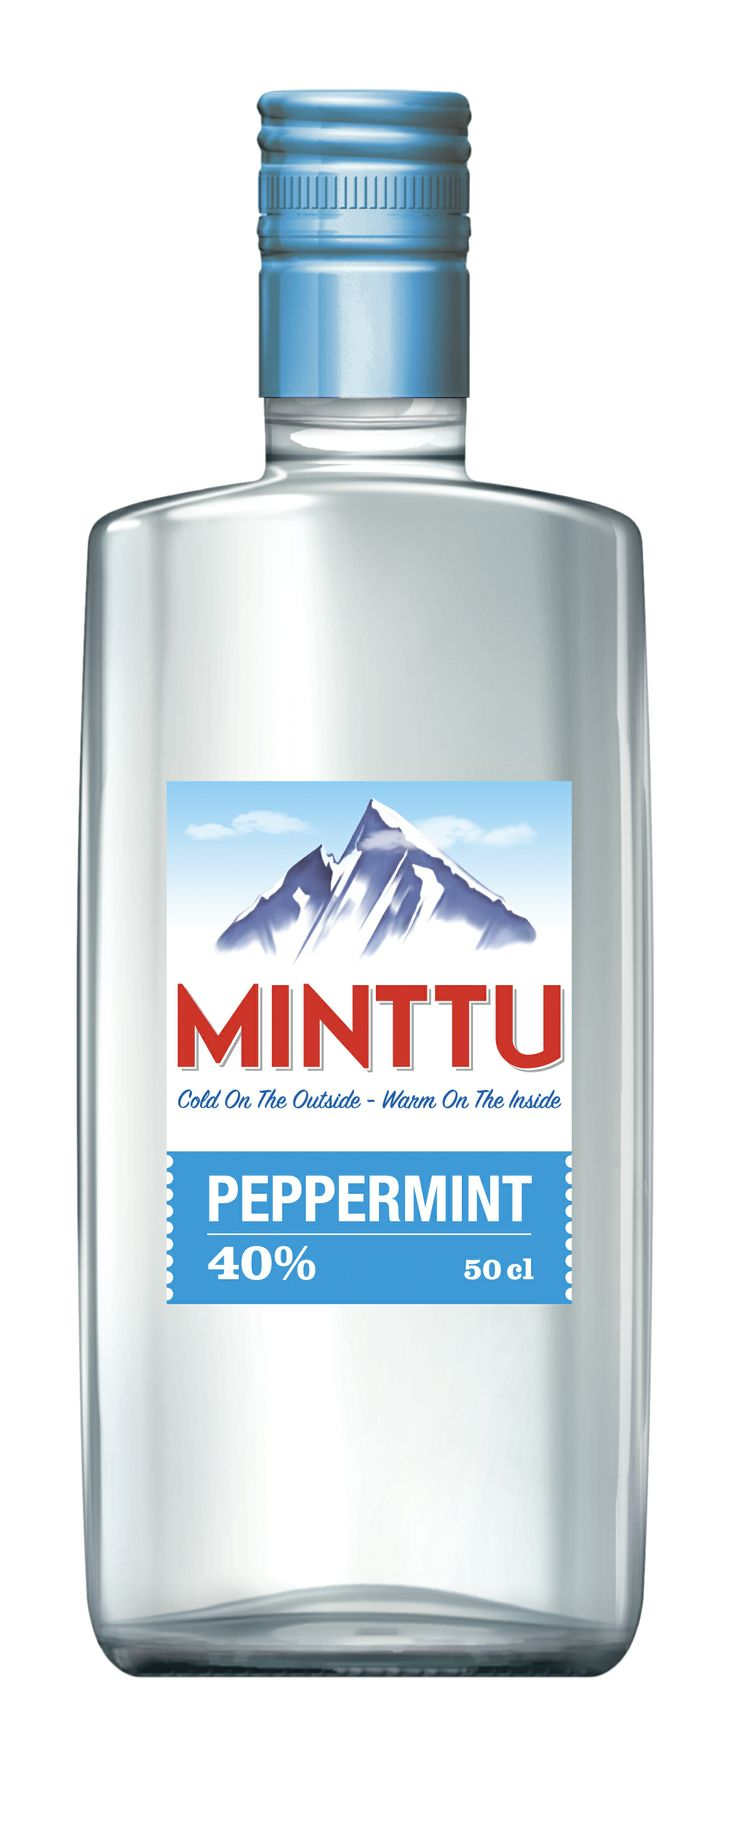 Minttu. I don't think they sell this anywhere other than Finland... absolute best peppermint schnapps I've ever had. It was also the most unique tipsy/drunk I've ever gotten. SO GOOD.